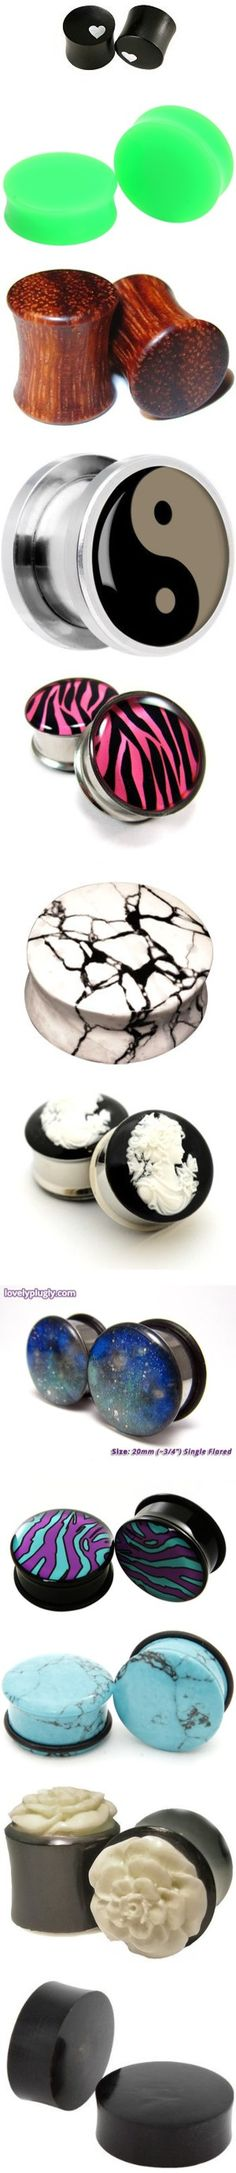 """""""plugs and tunnels #2"""" by jassejailbait ❤ liked on Polyvore"""